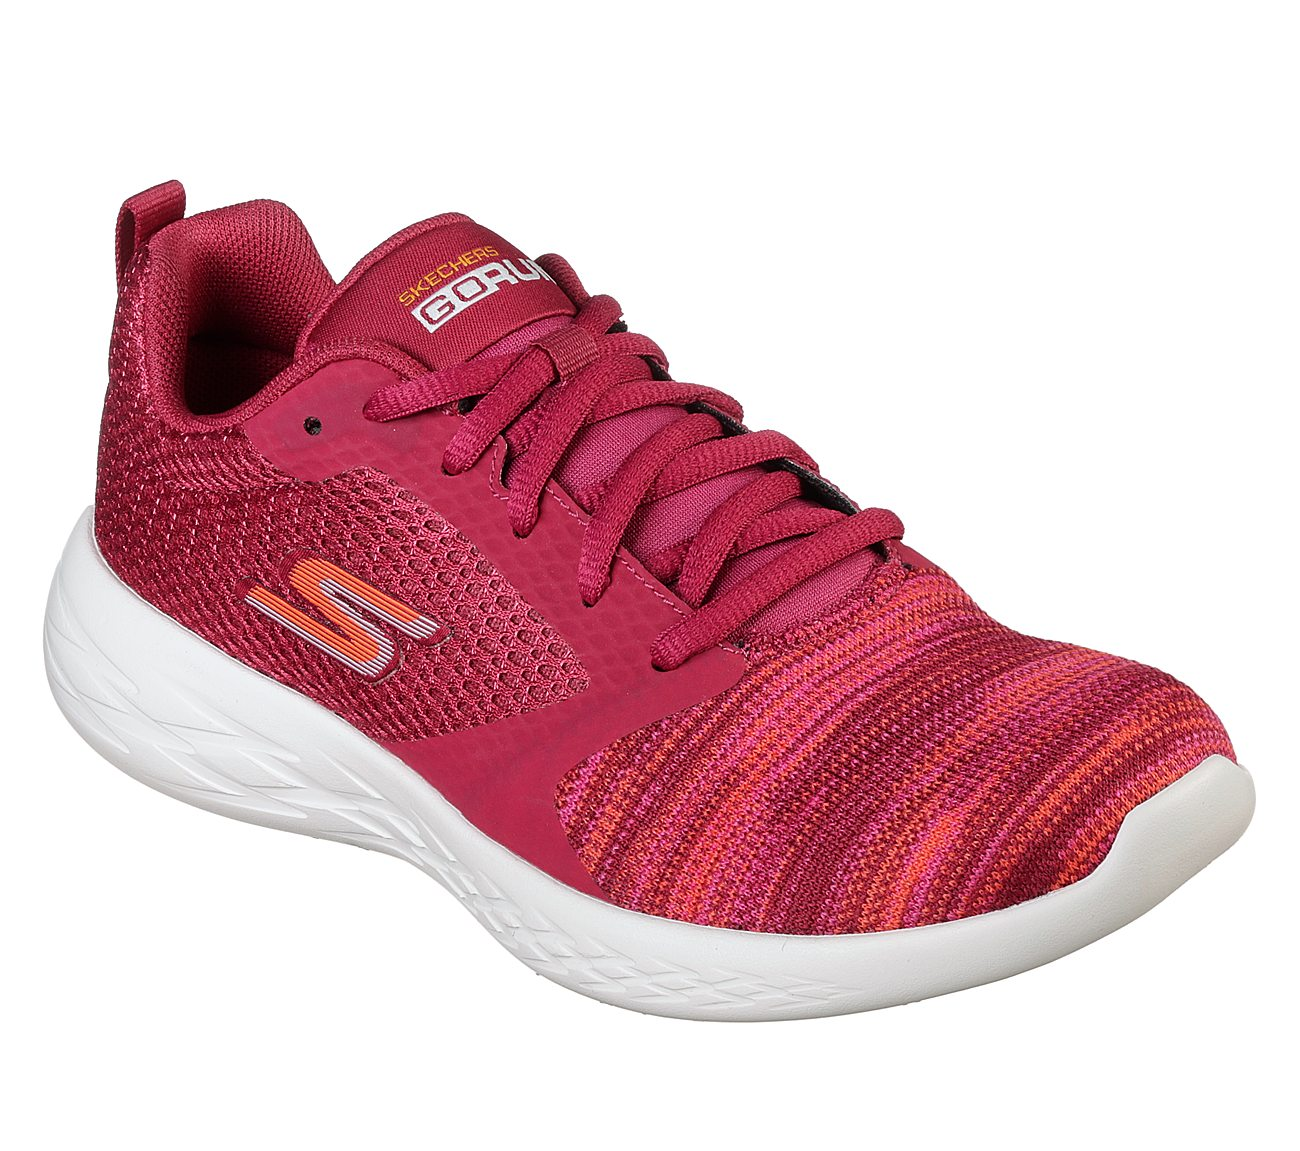 Skechers GOrun 600 - Reactor